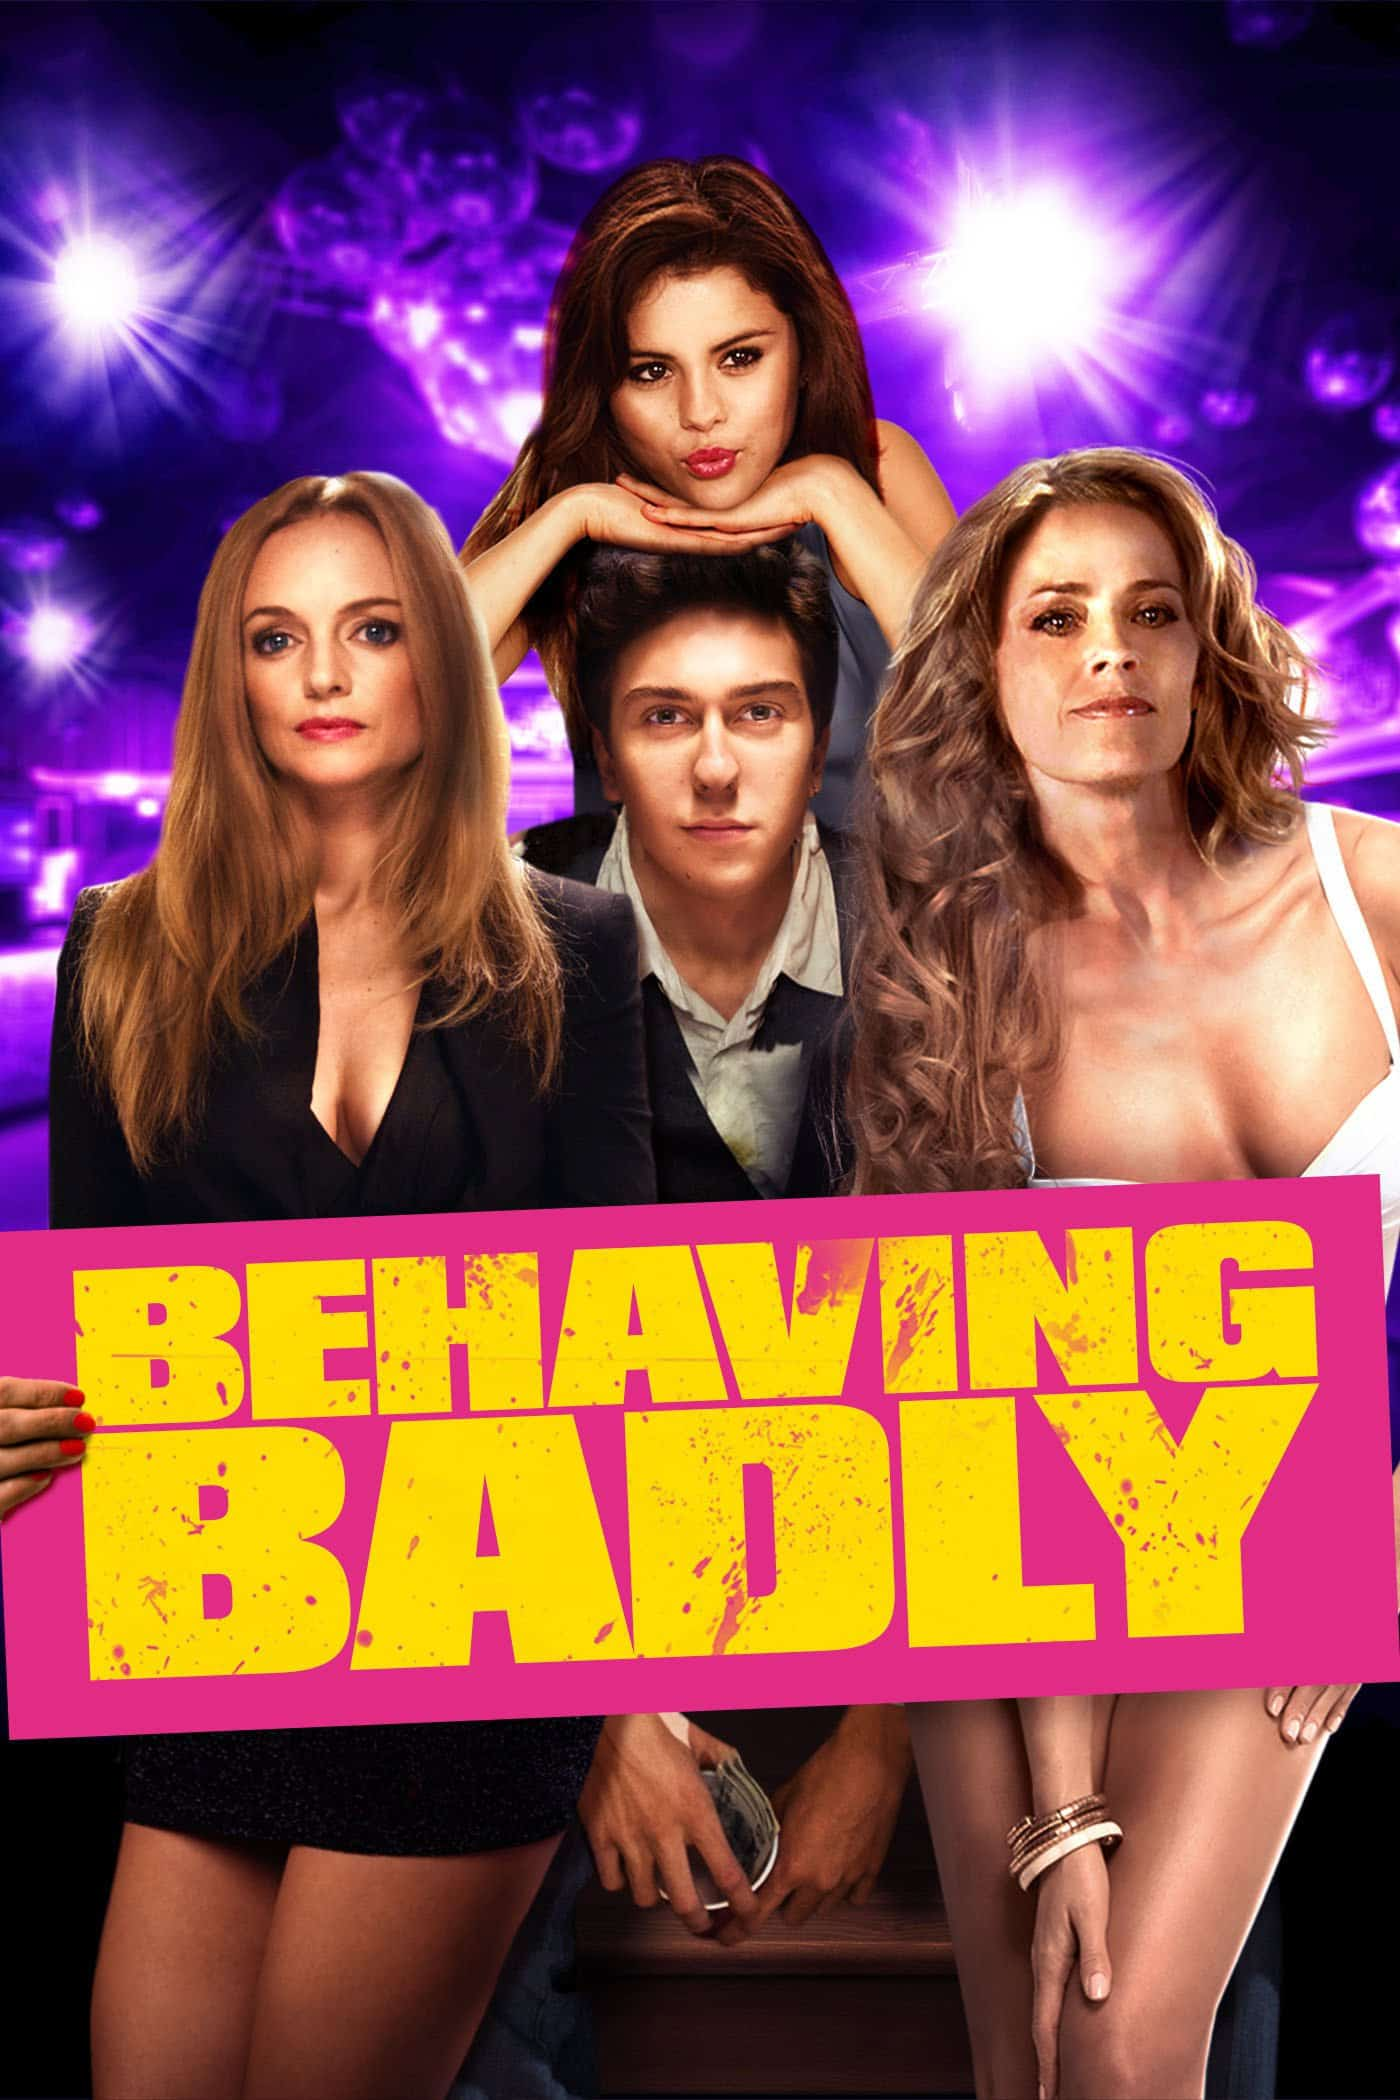 Behaving Badly, 2014